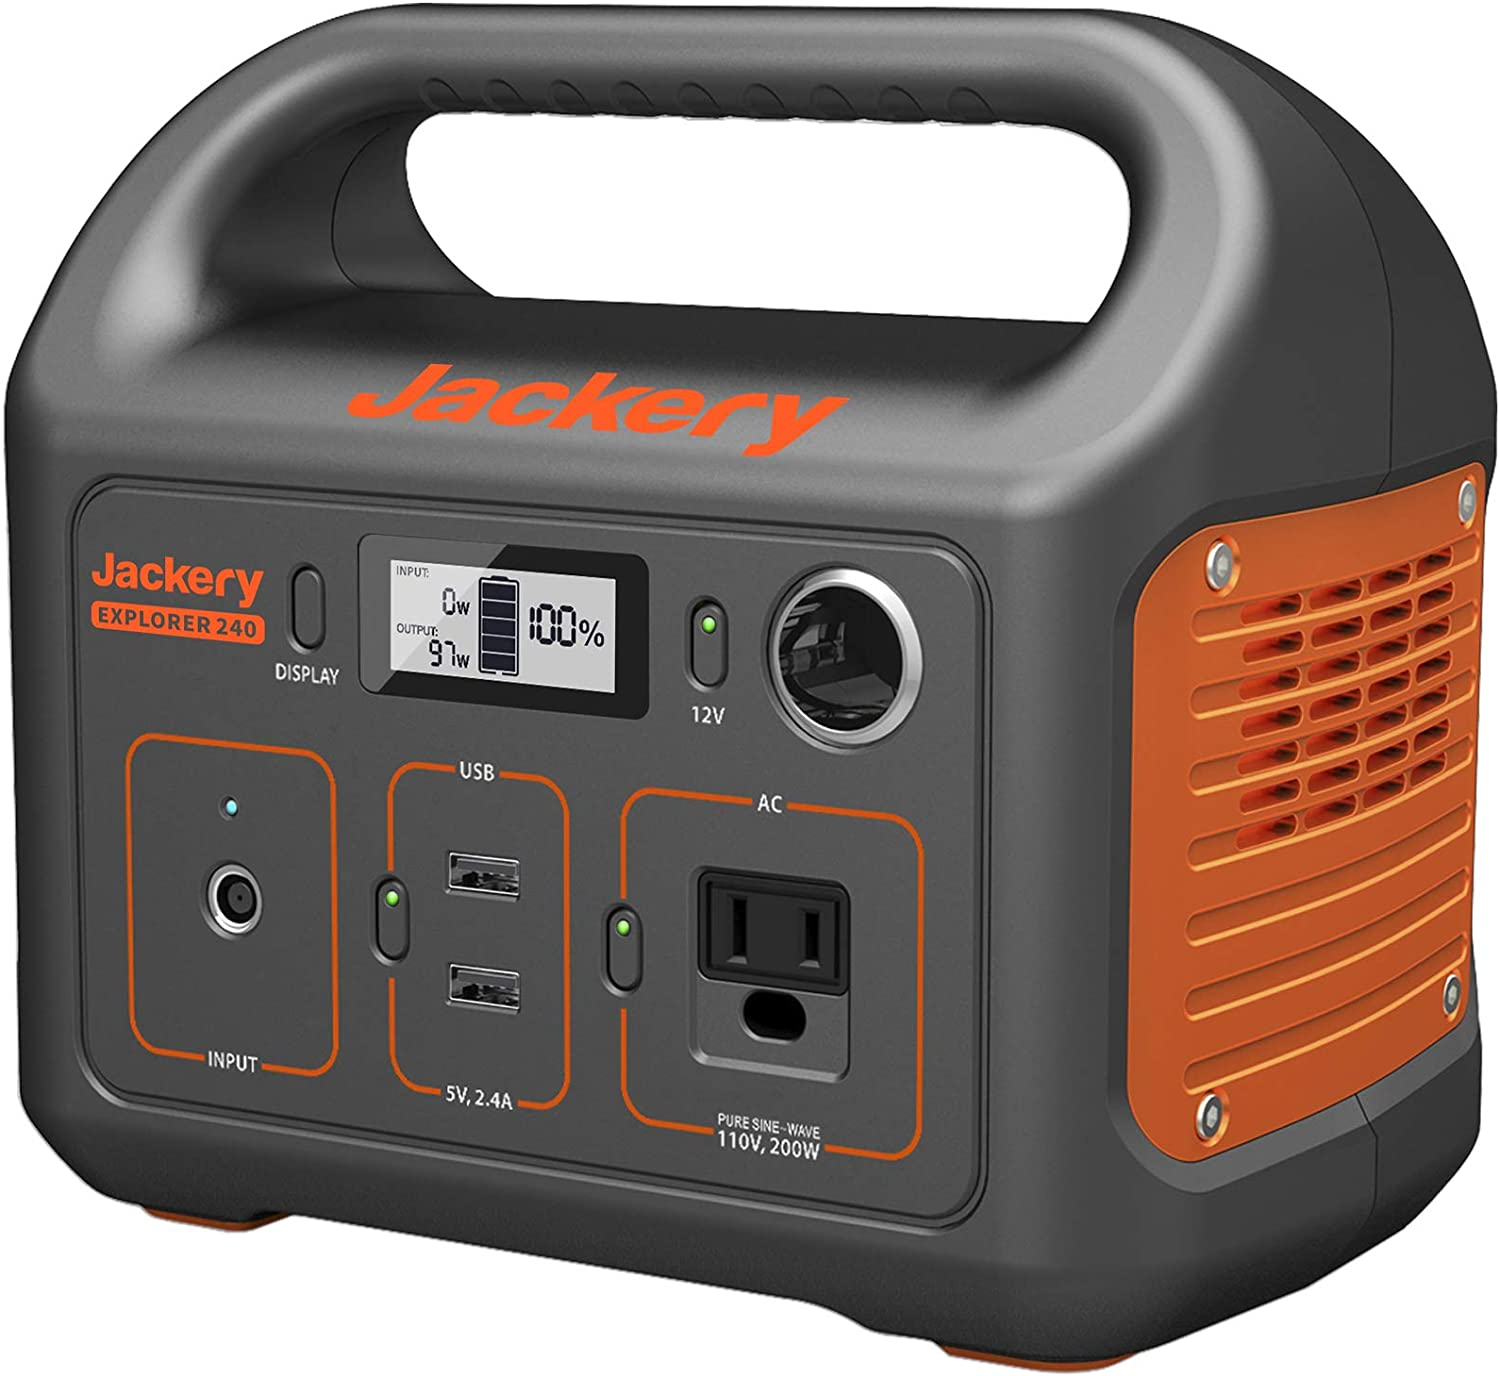 Jackery Portable Power Station Explorer 240, 240Wh Backup Lithium Battery, 110V/200W Pure Sine Wave AC Outlet, Solar Generator (Solar Panel Not Included) for Outdoors Camping Travel Hunting Emergency : Garden & Outdoor